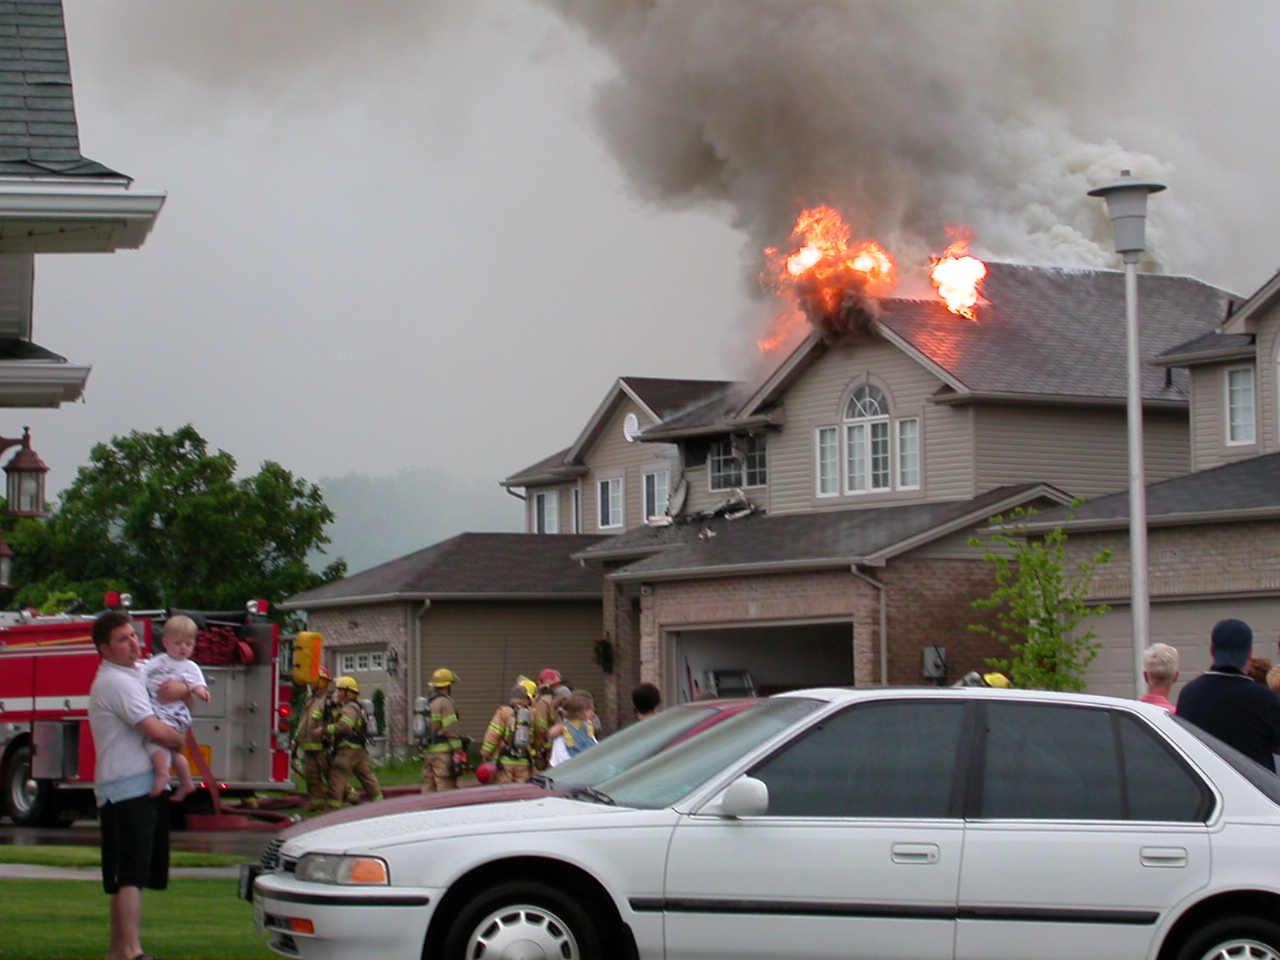 Garage roof on fire, fire fighters gathering to attack garage roof fire.